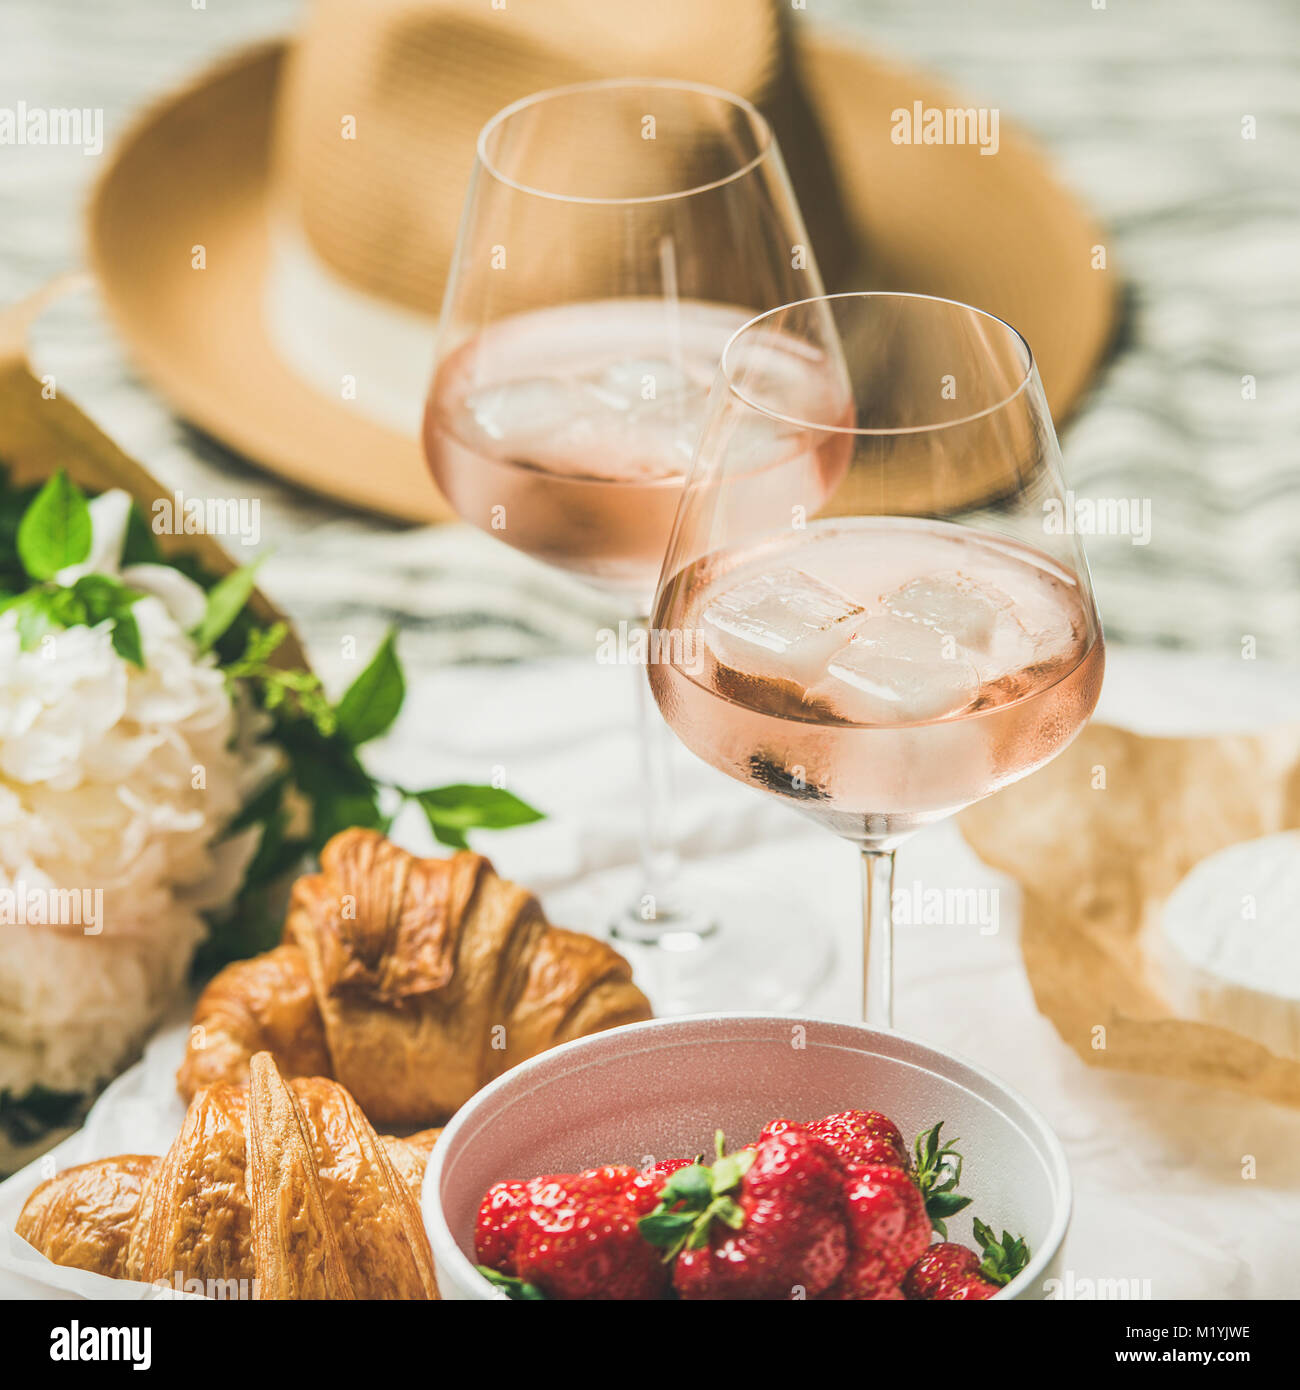 French style romantic summer picnic setting. Flat-lay of glasses of rose wine with ice, fresh strawberries, croissants, - Stock Image